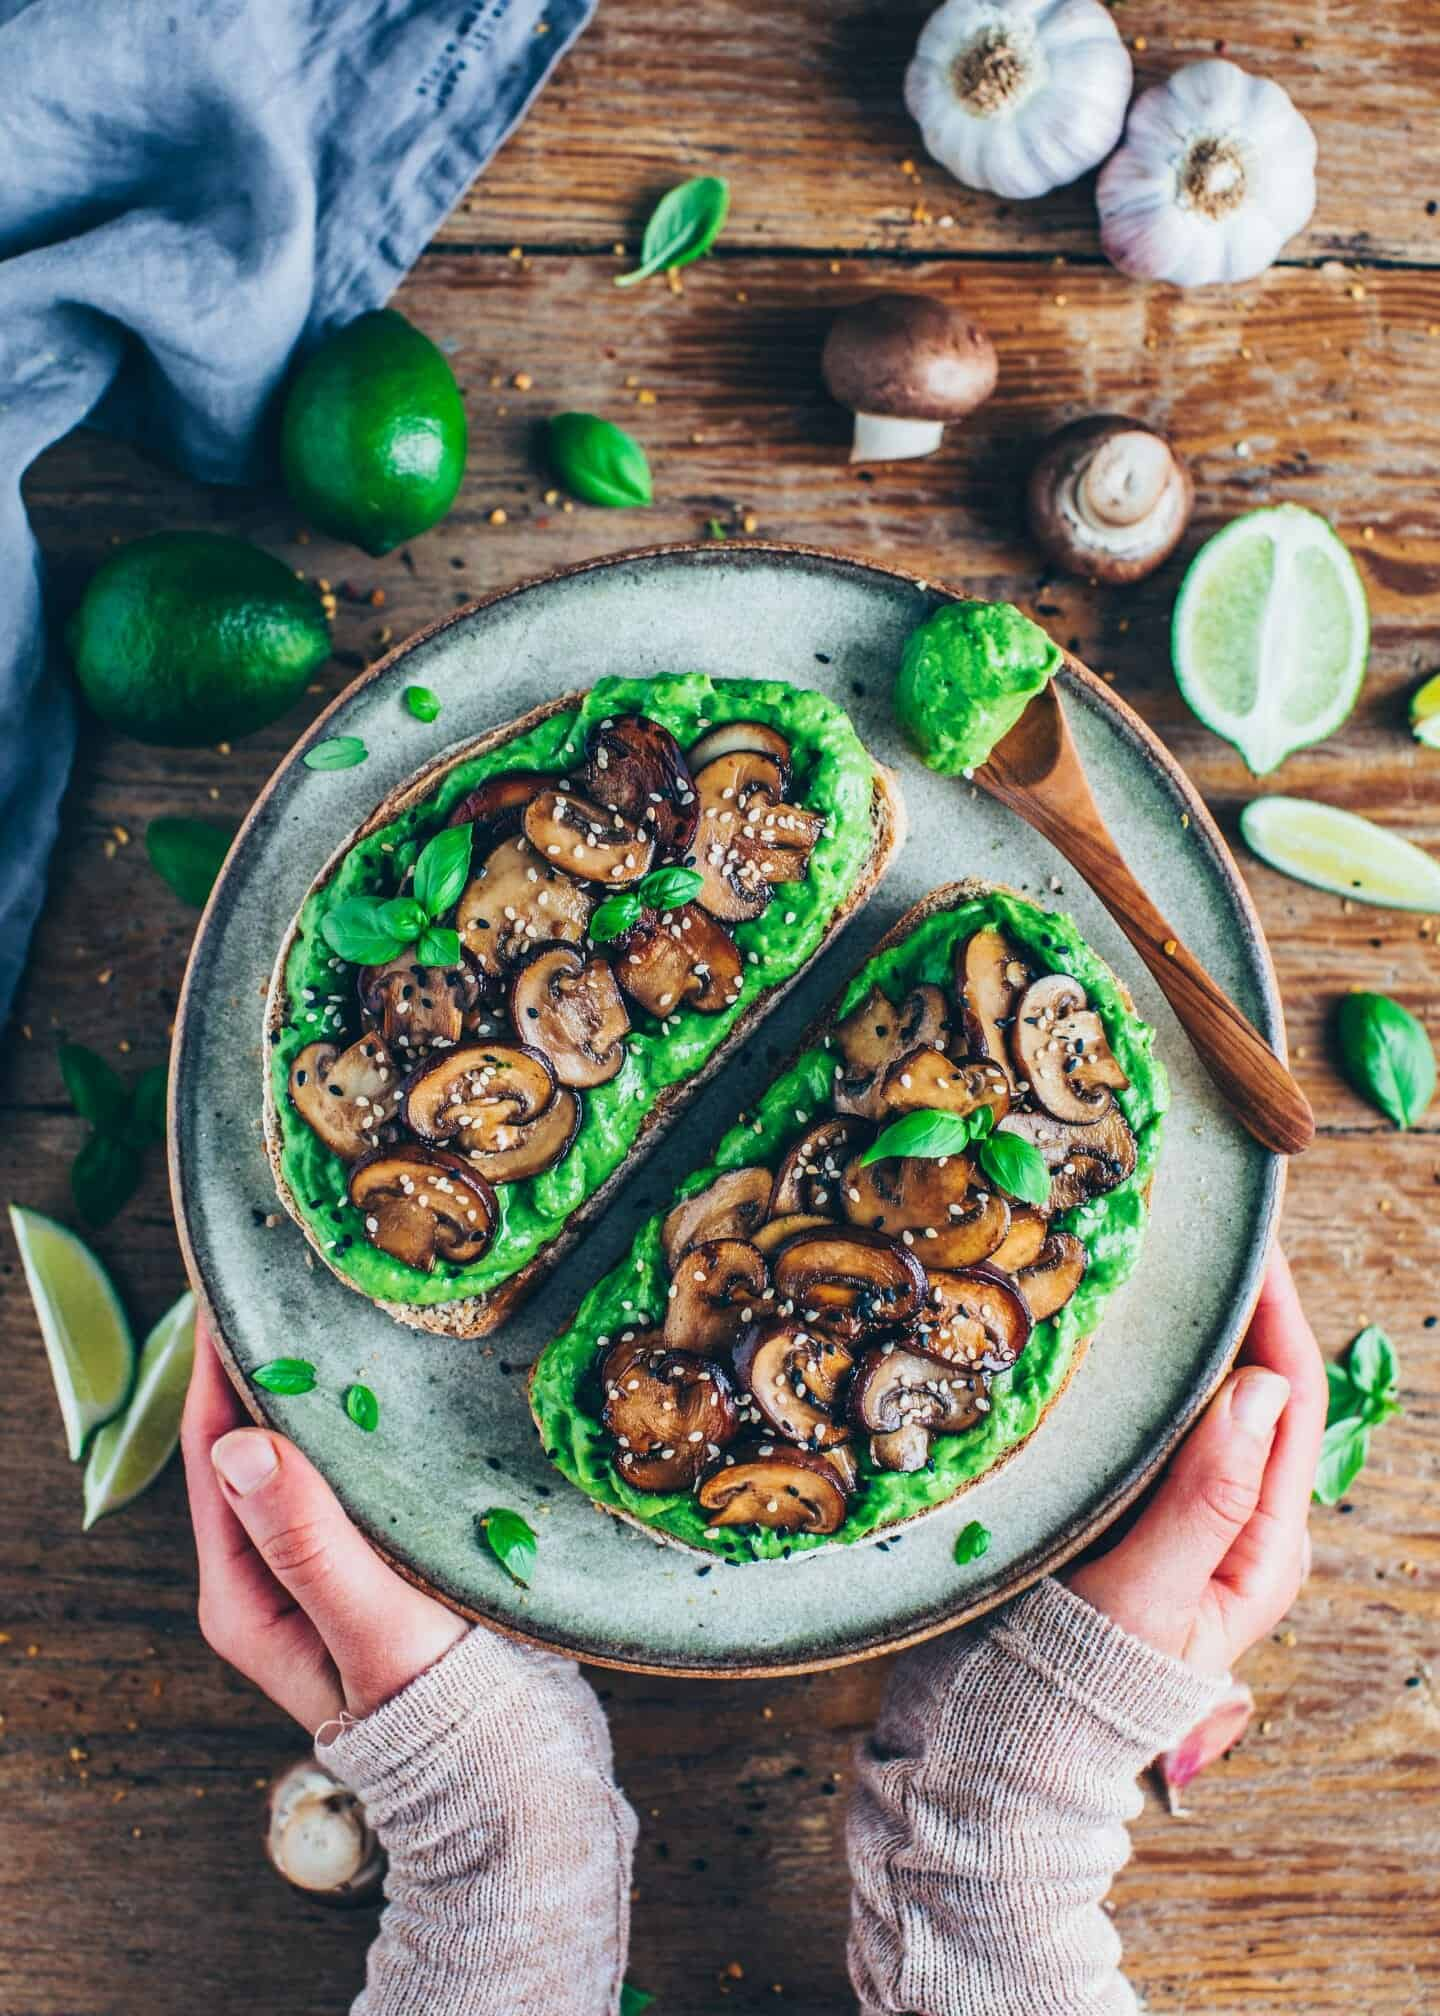 This crispy Avocado Toast with creamy guacamole and pan-fried garlic mushrooms is the perfect snack, breakfast, lunch or dinner. This recipe is very easy and quick to make, delicious and healthy!